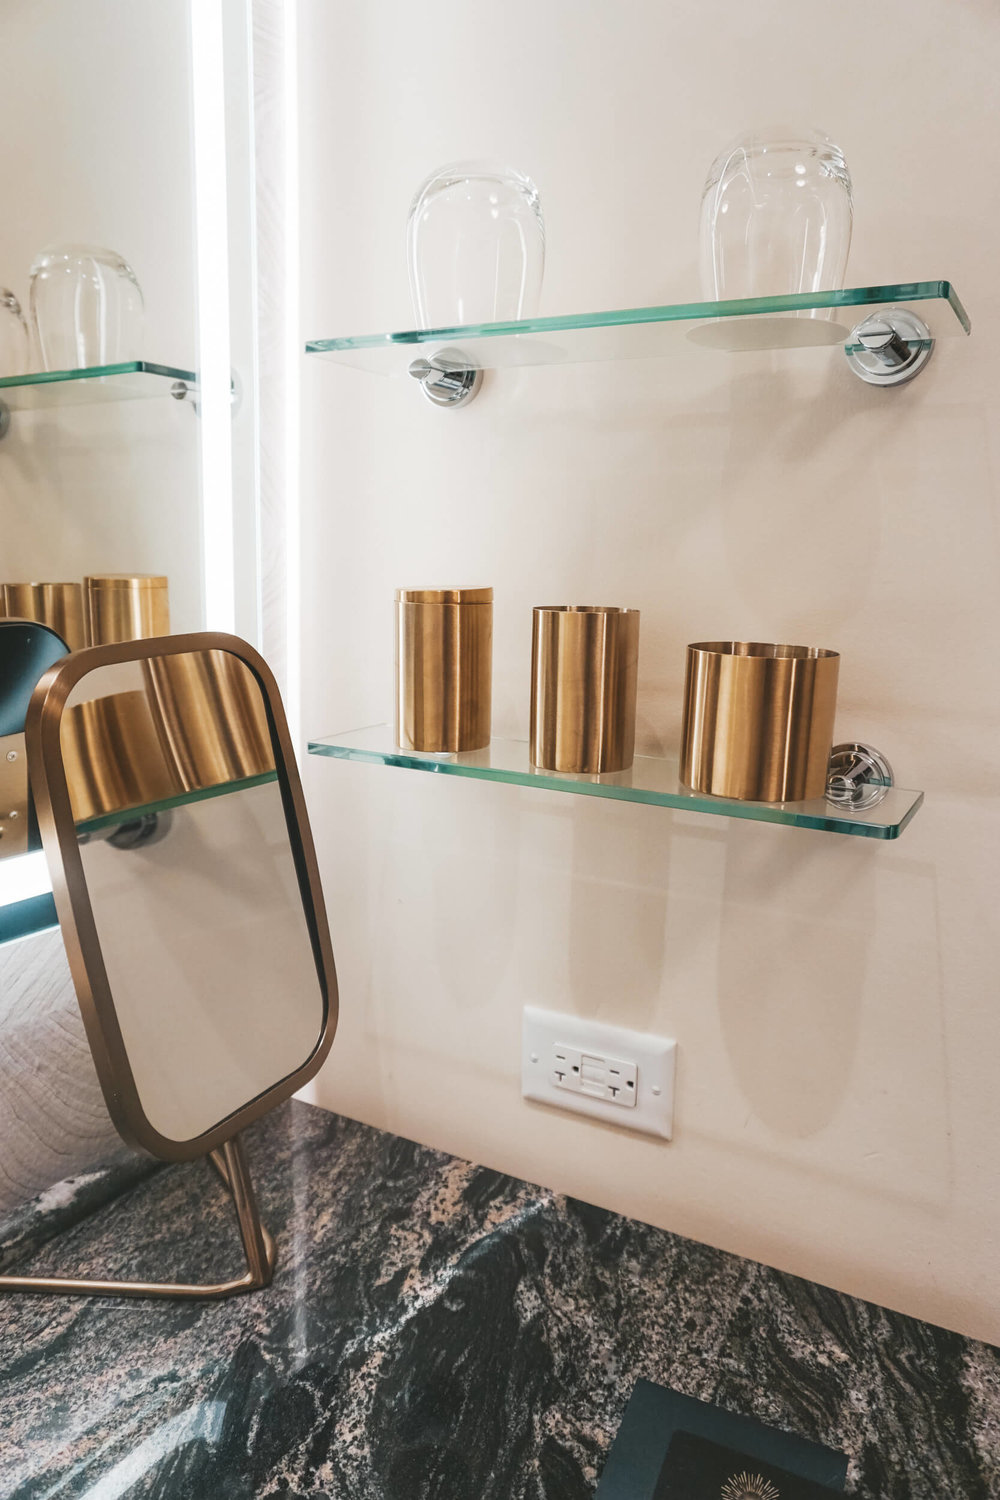 Gold art deco bathroom accessories at Viceroy Chicago